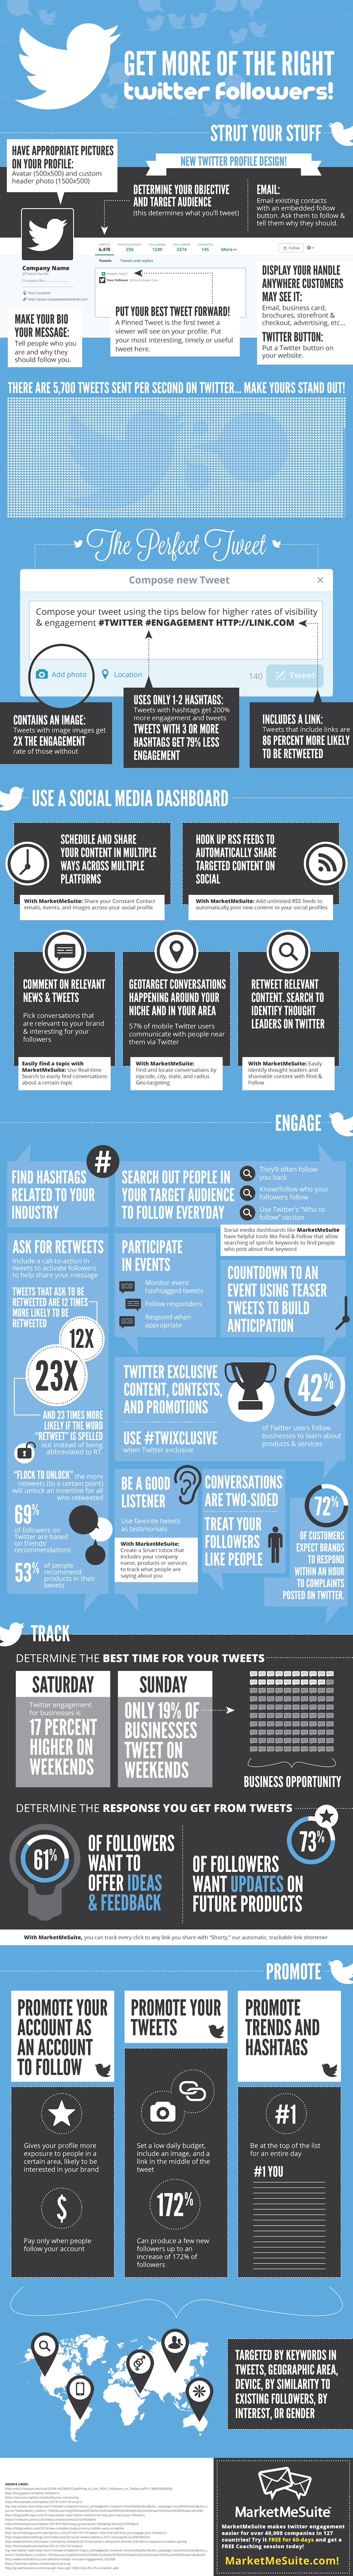 Get More Twitter Followers Infographic